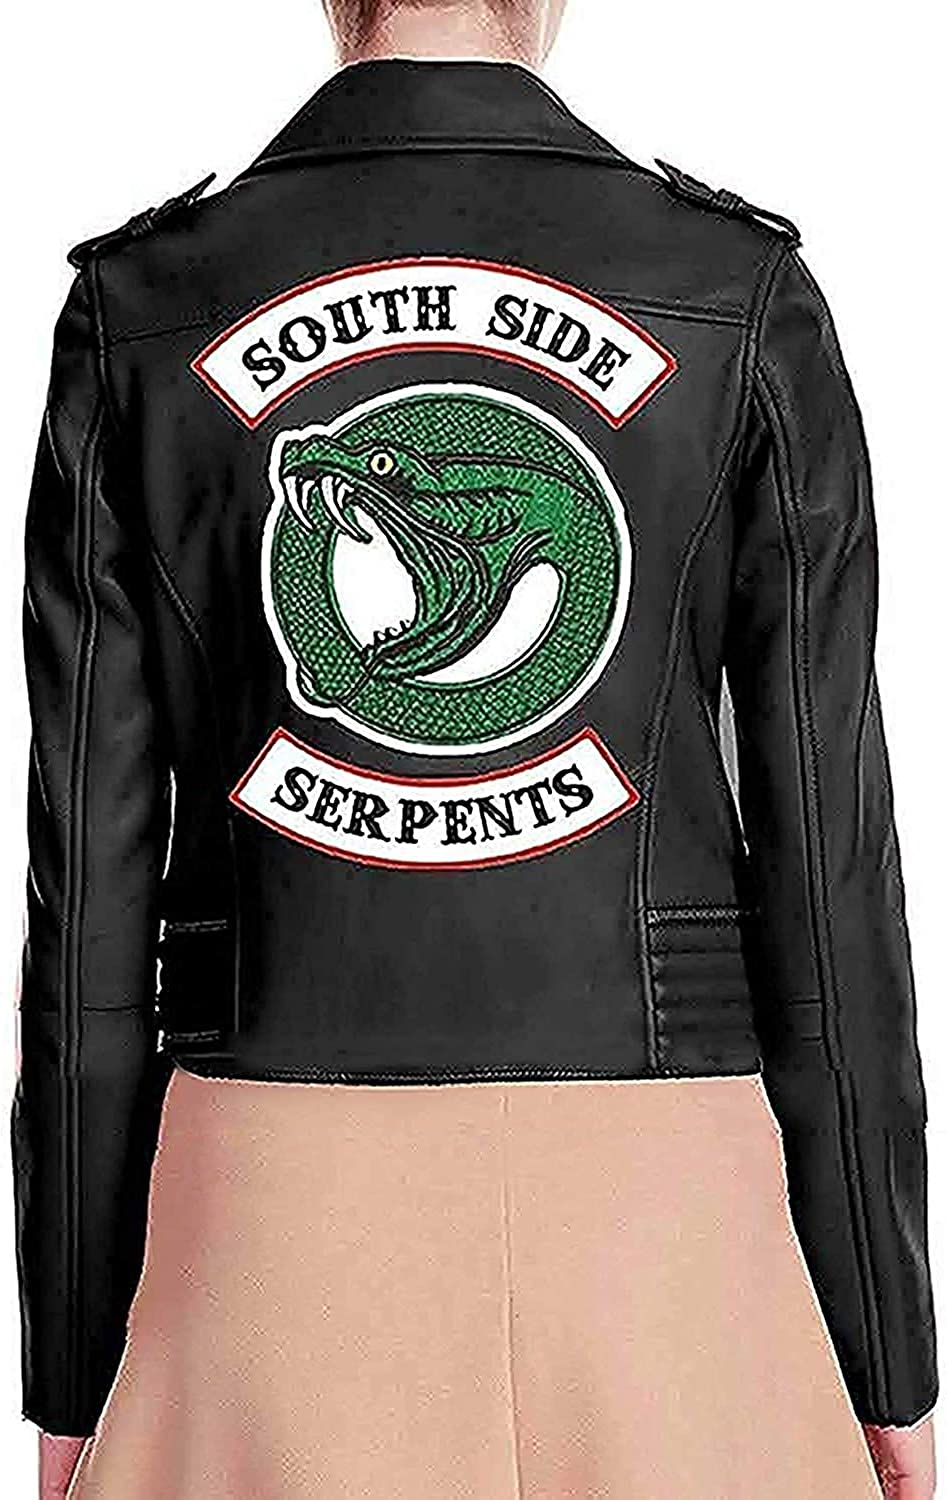 Indefinitely RB Fashions Womens Logo Black Faux Snake Jacket Ga Leather Super-cheap with